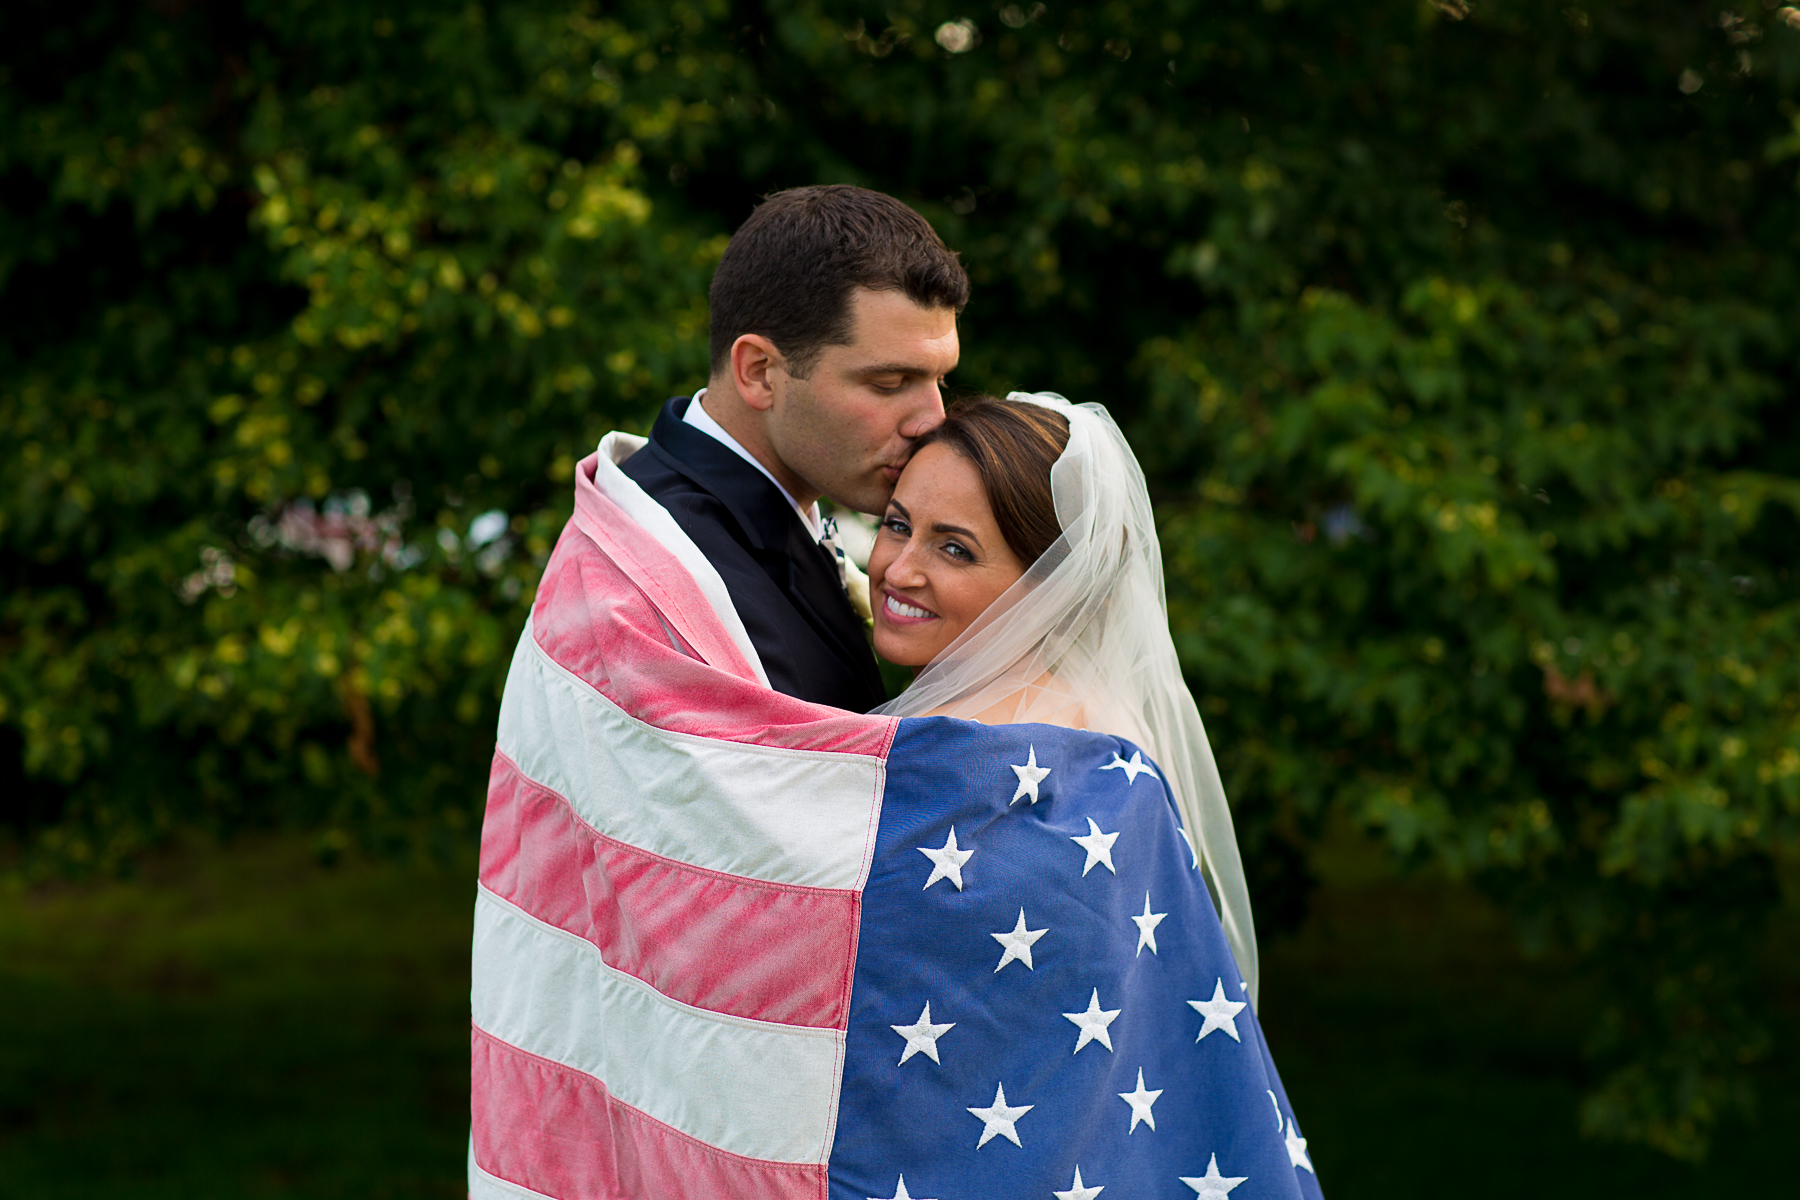 patriotic wedding photo Fourth of July